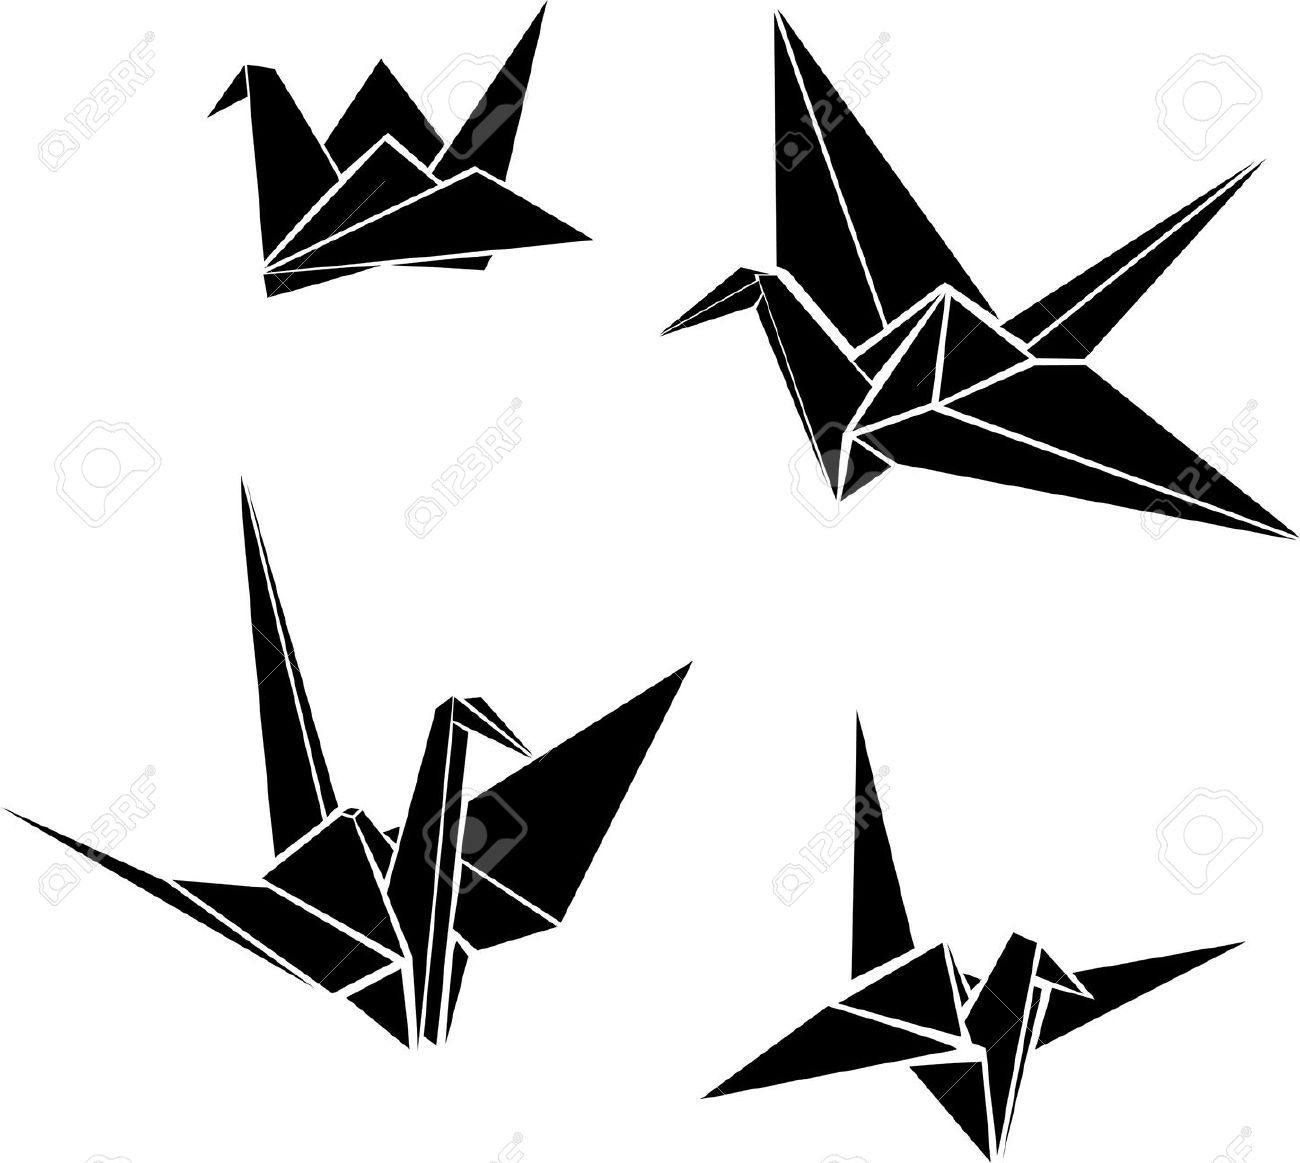 Origami Crane Cliparts, Stock Vector And Royalty Free ... - photo#6